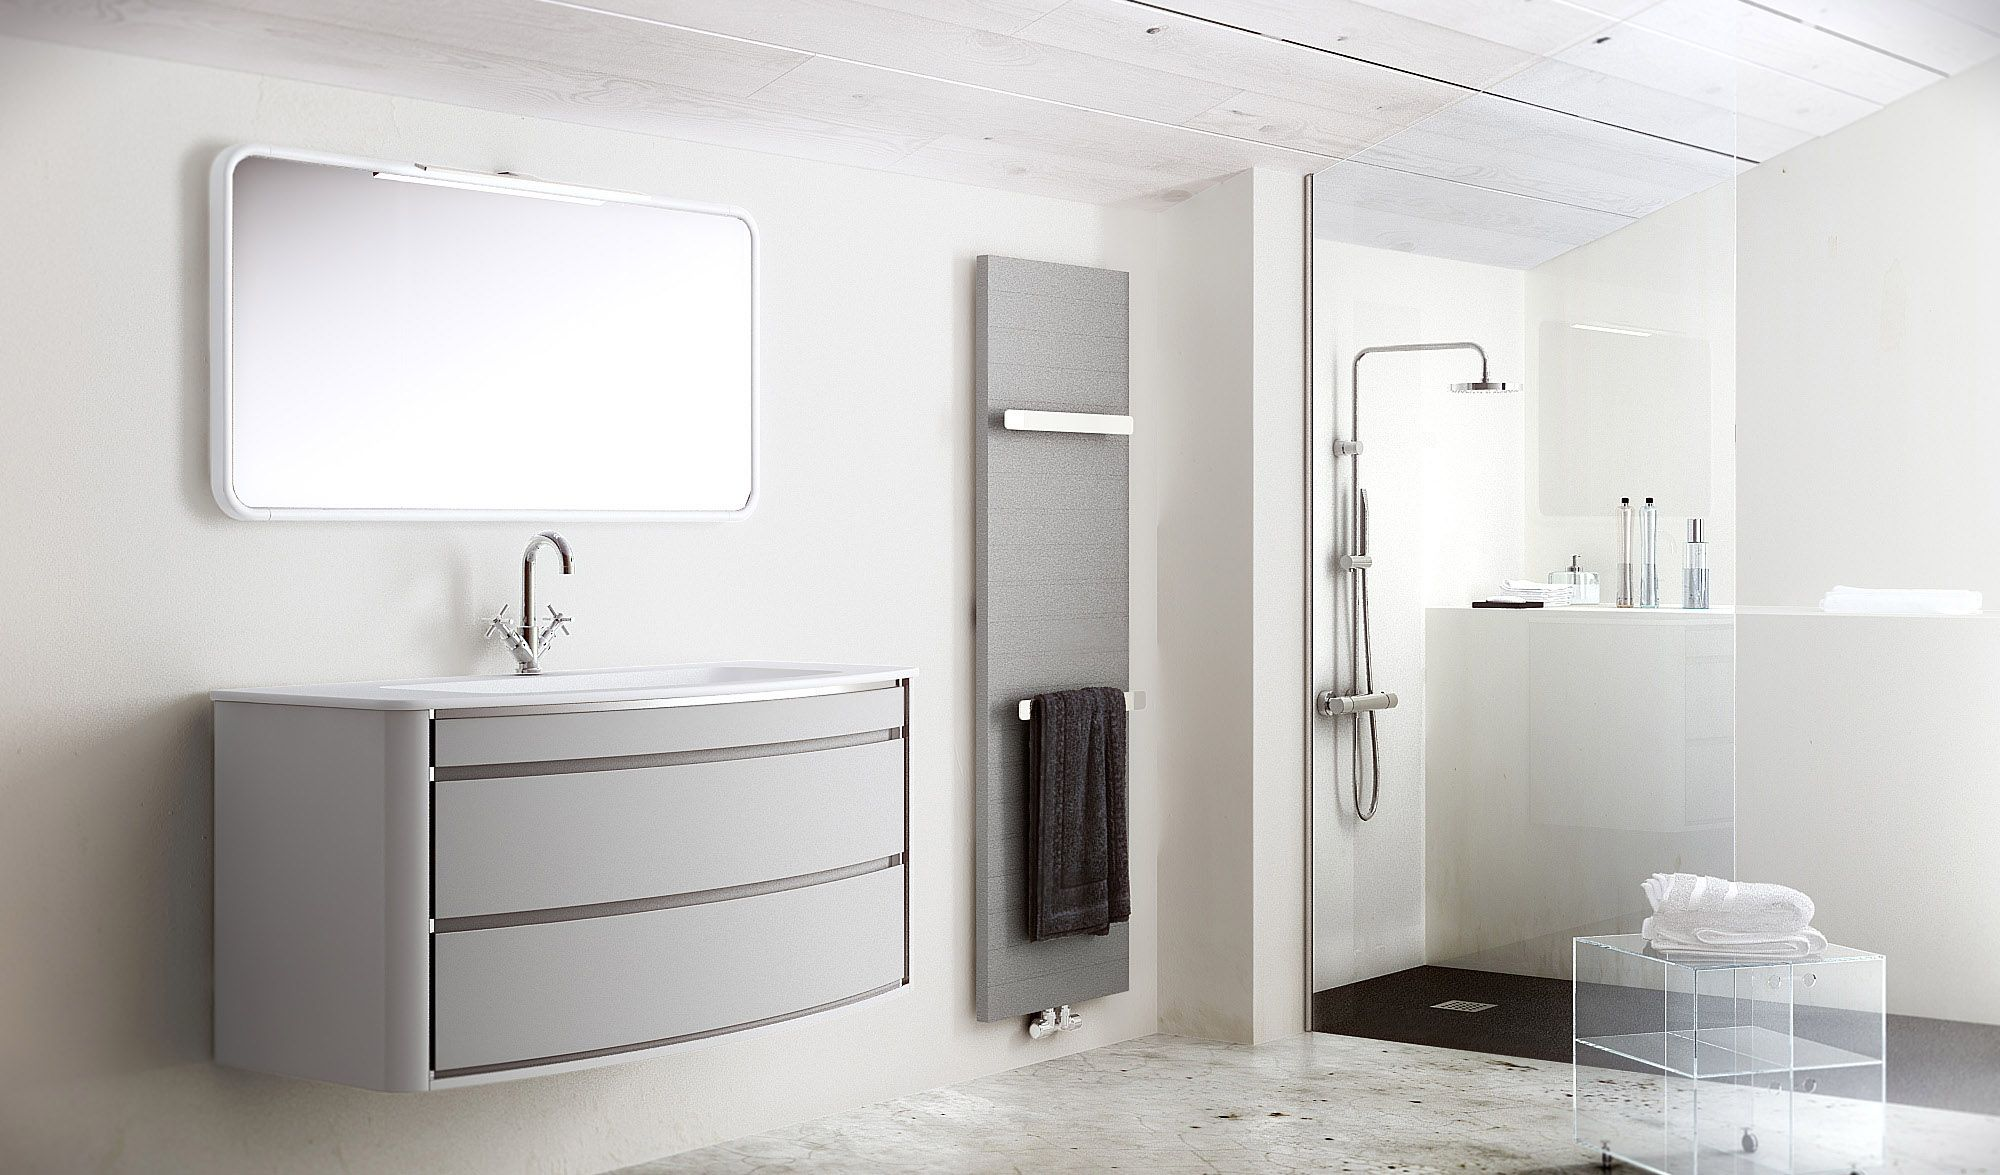 Fiora Salle De Bain fiora: in touch collection grey. | bathroom furniture, house